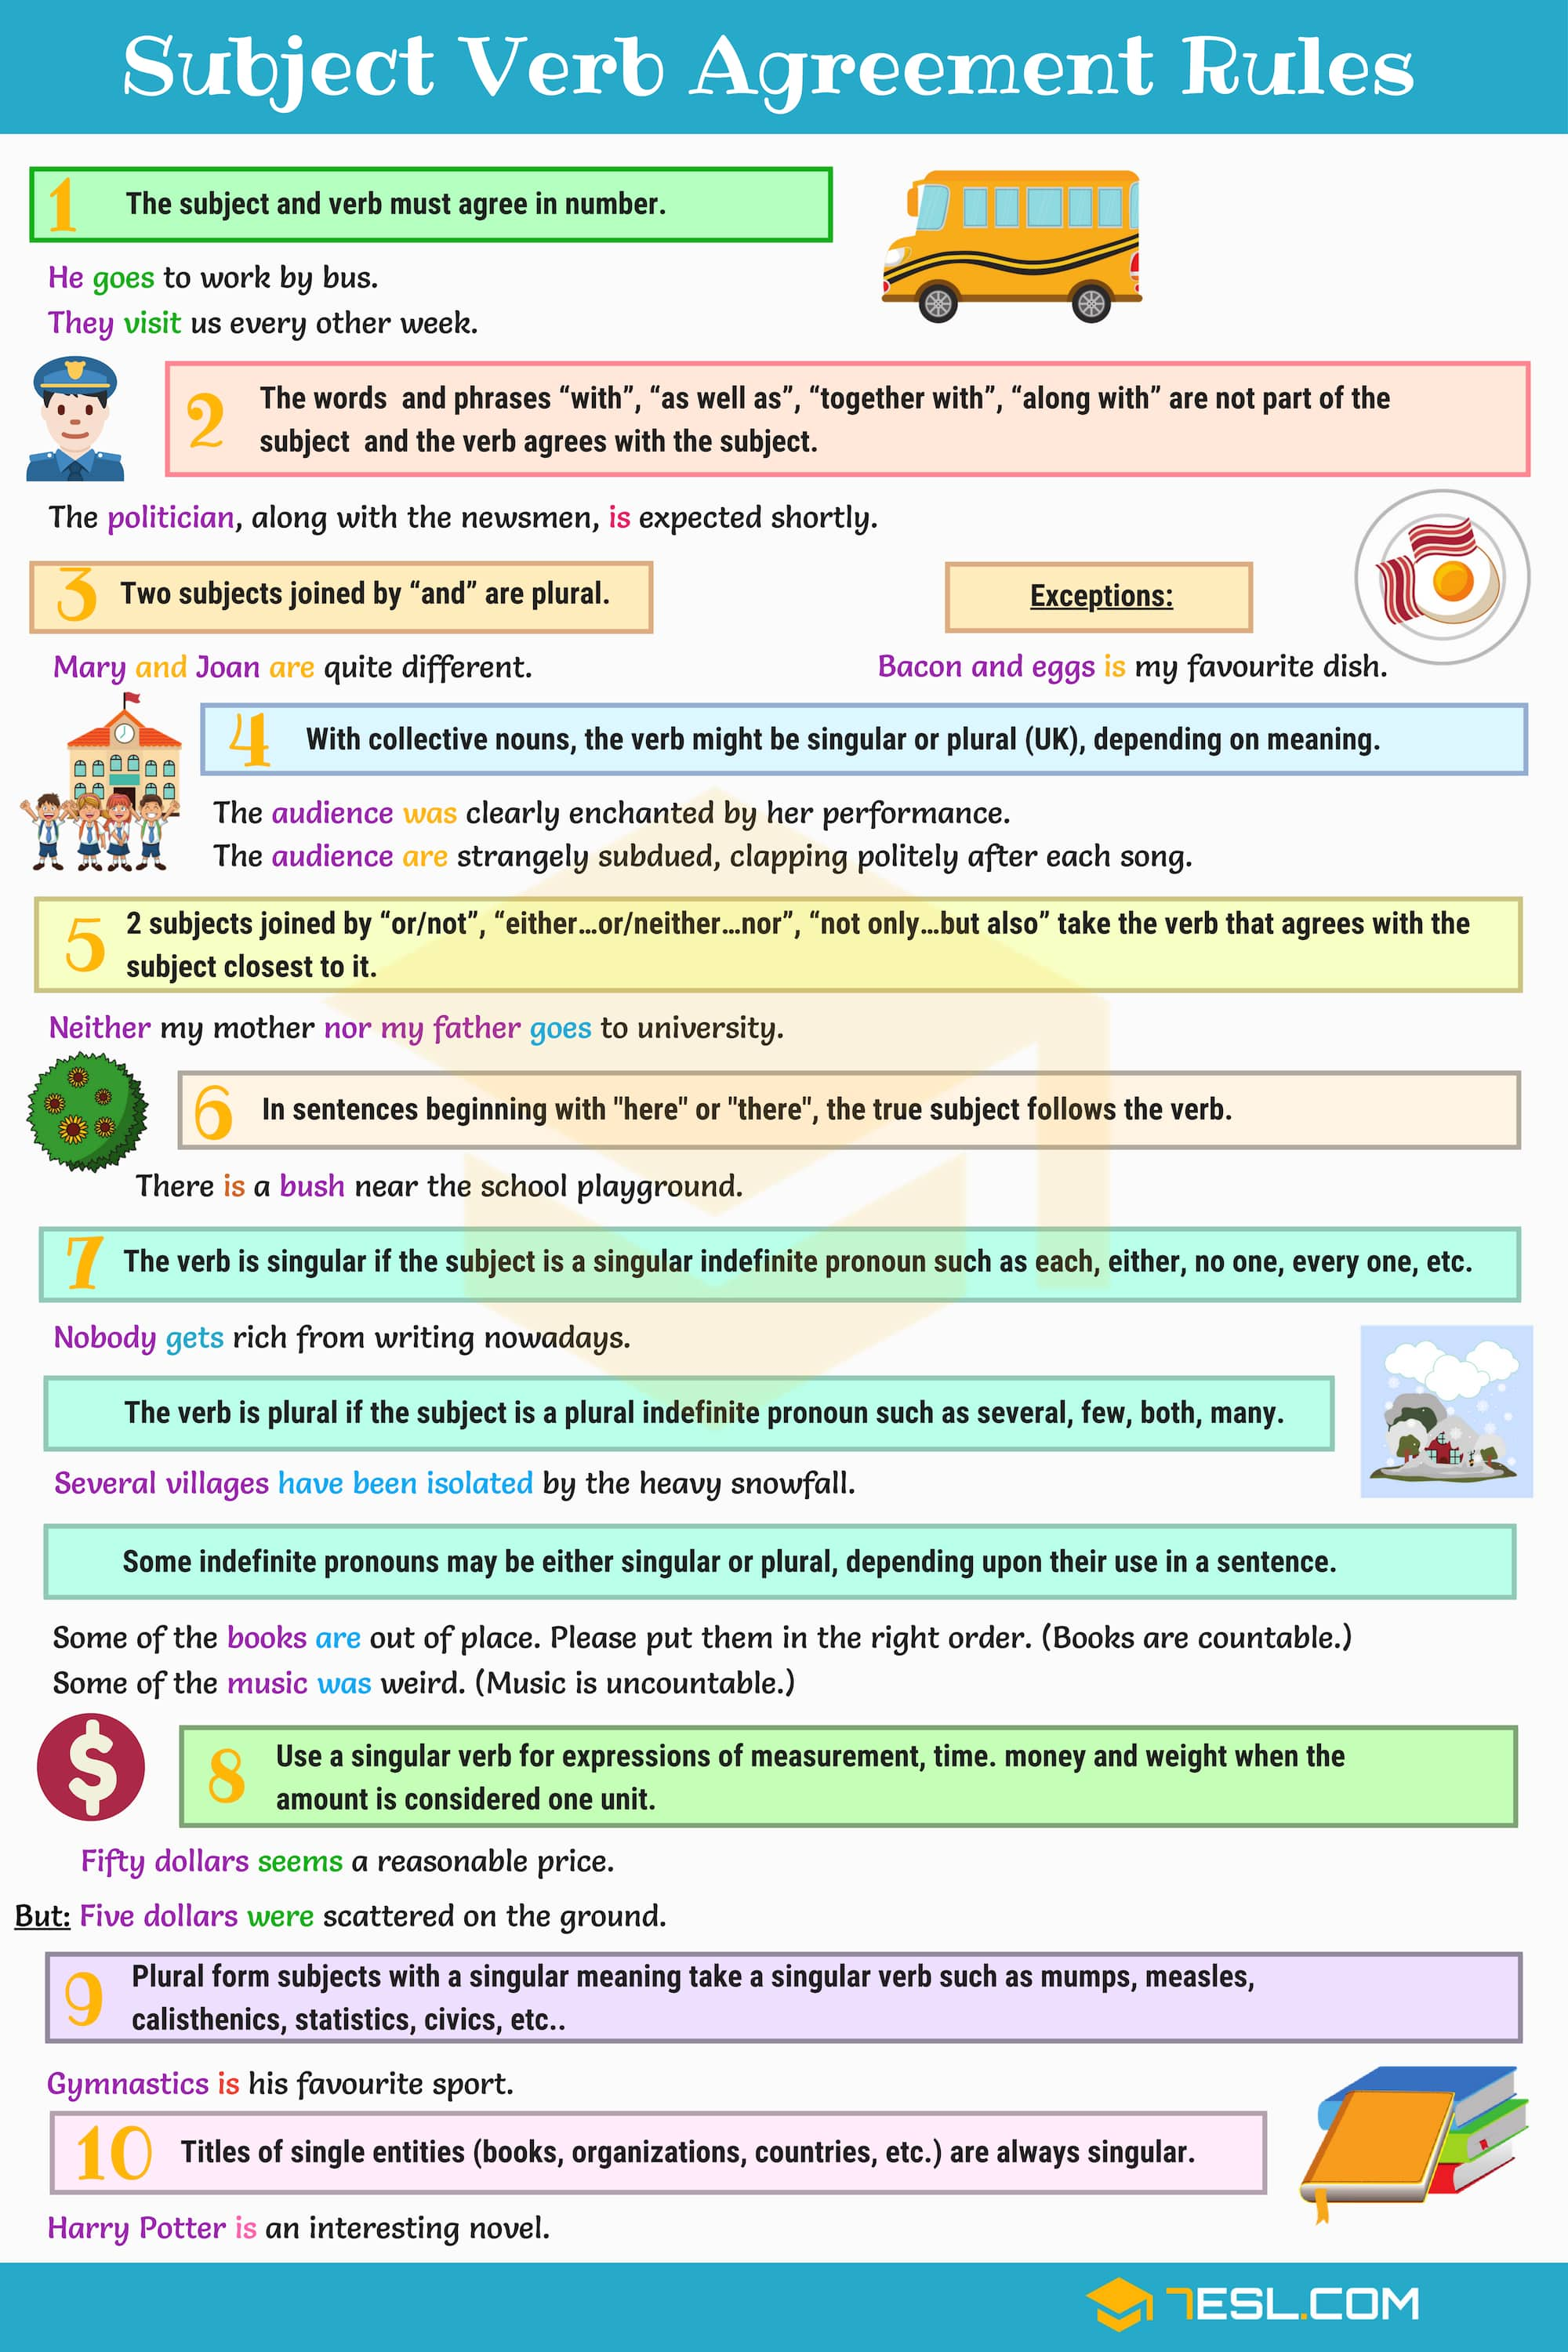 hight resolution of Subject Verb Agreement Rules and Useful Examples • 7ESL